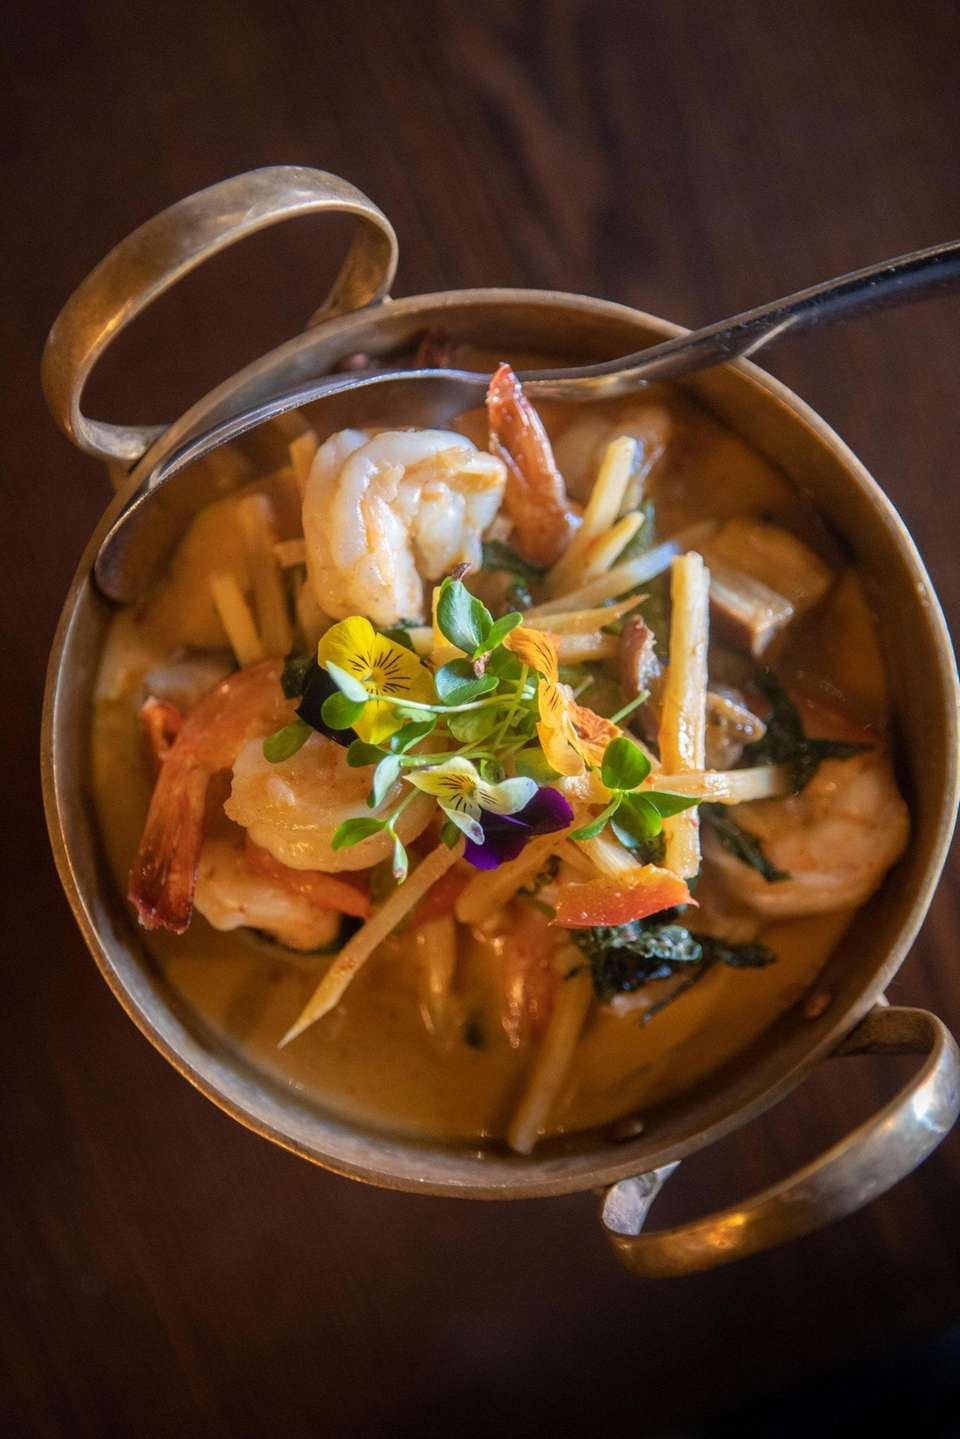 The seafood curry at Tum Thai in Rockville